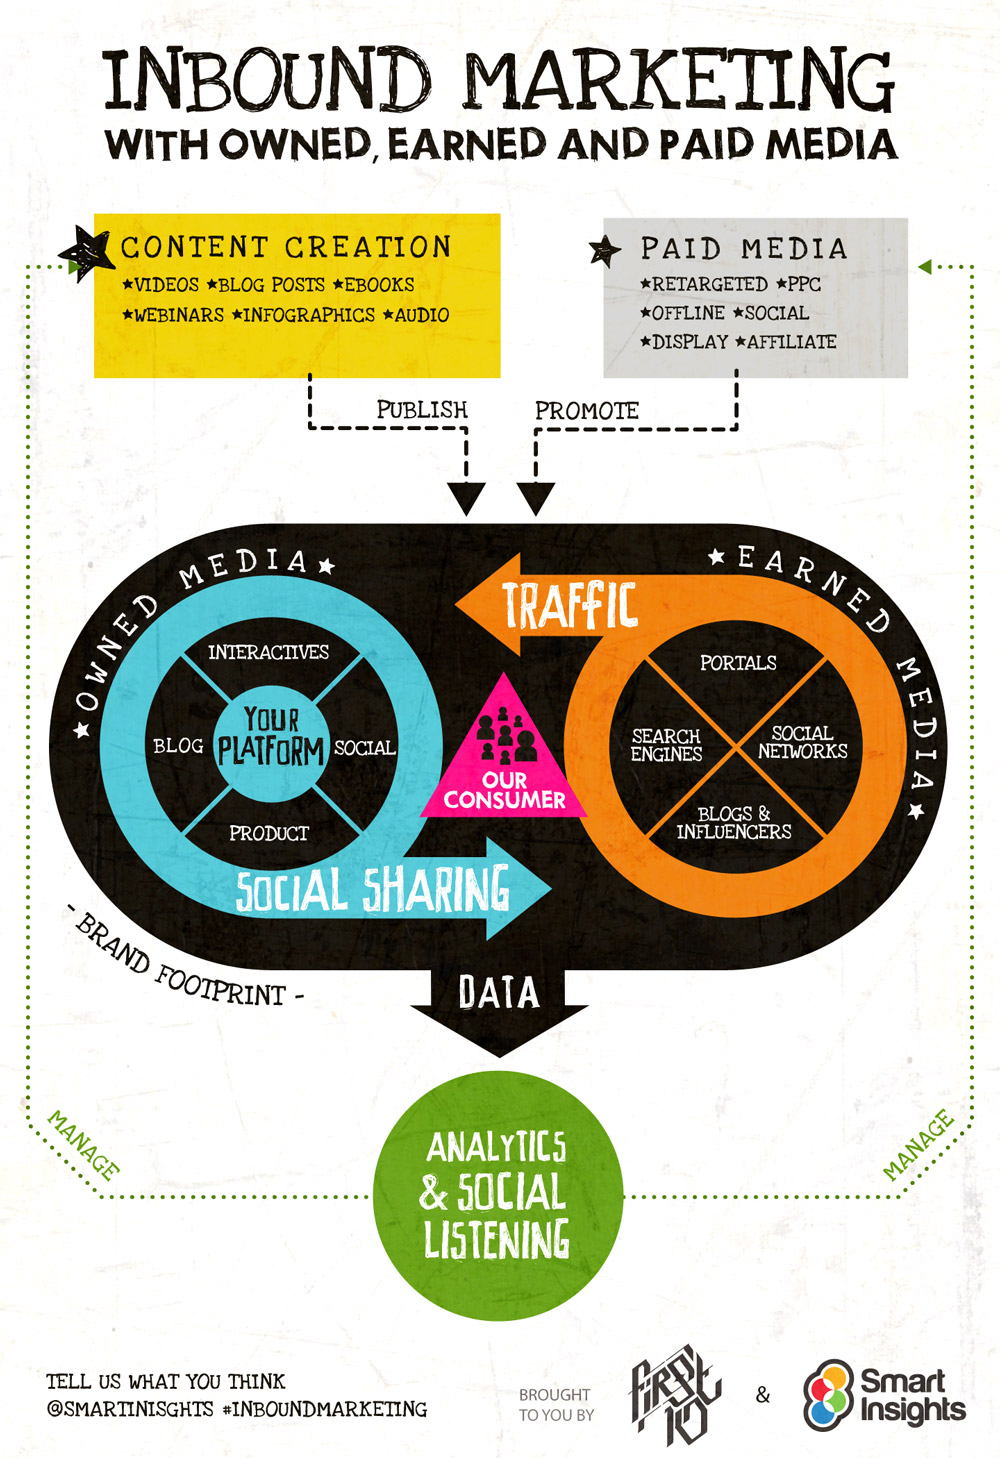 inbound-marketing-infographic.jpg